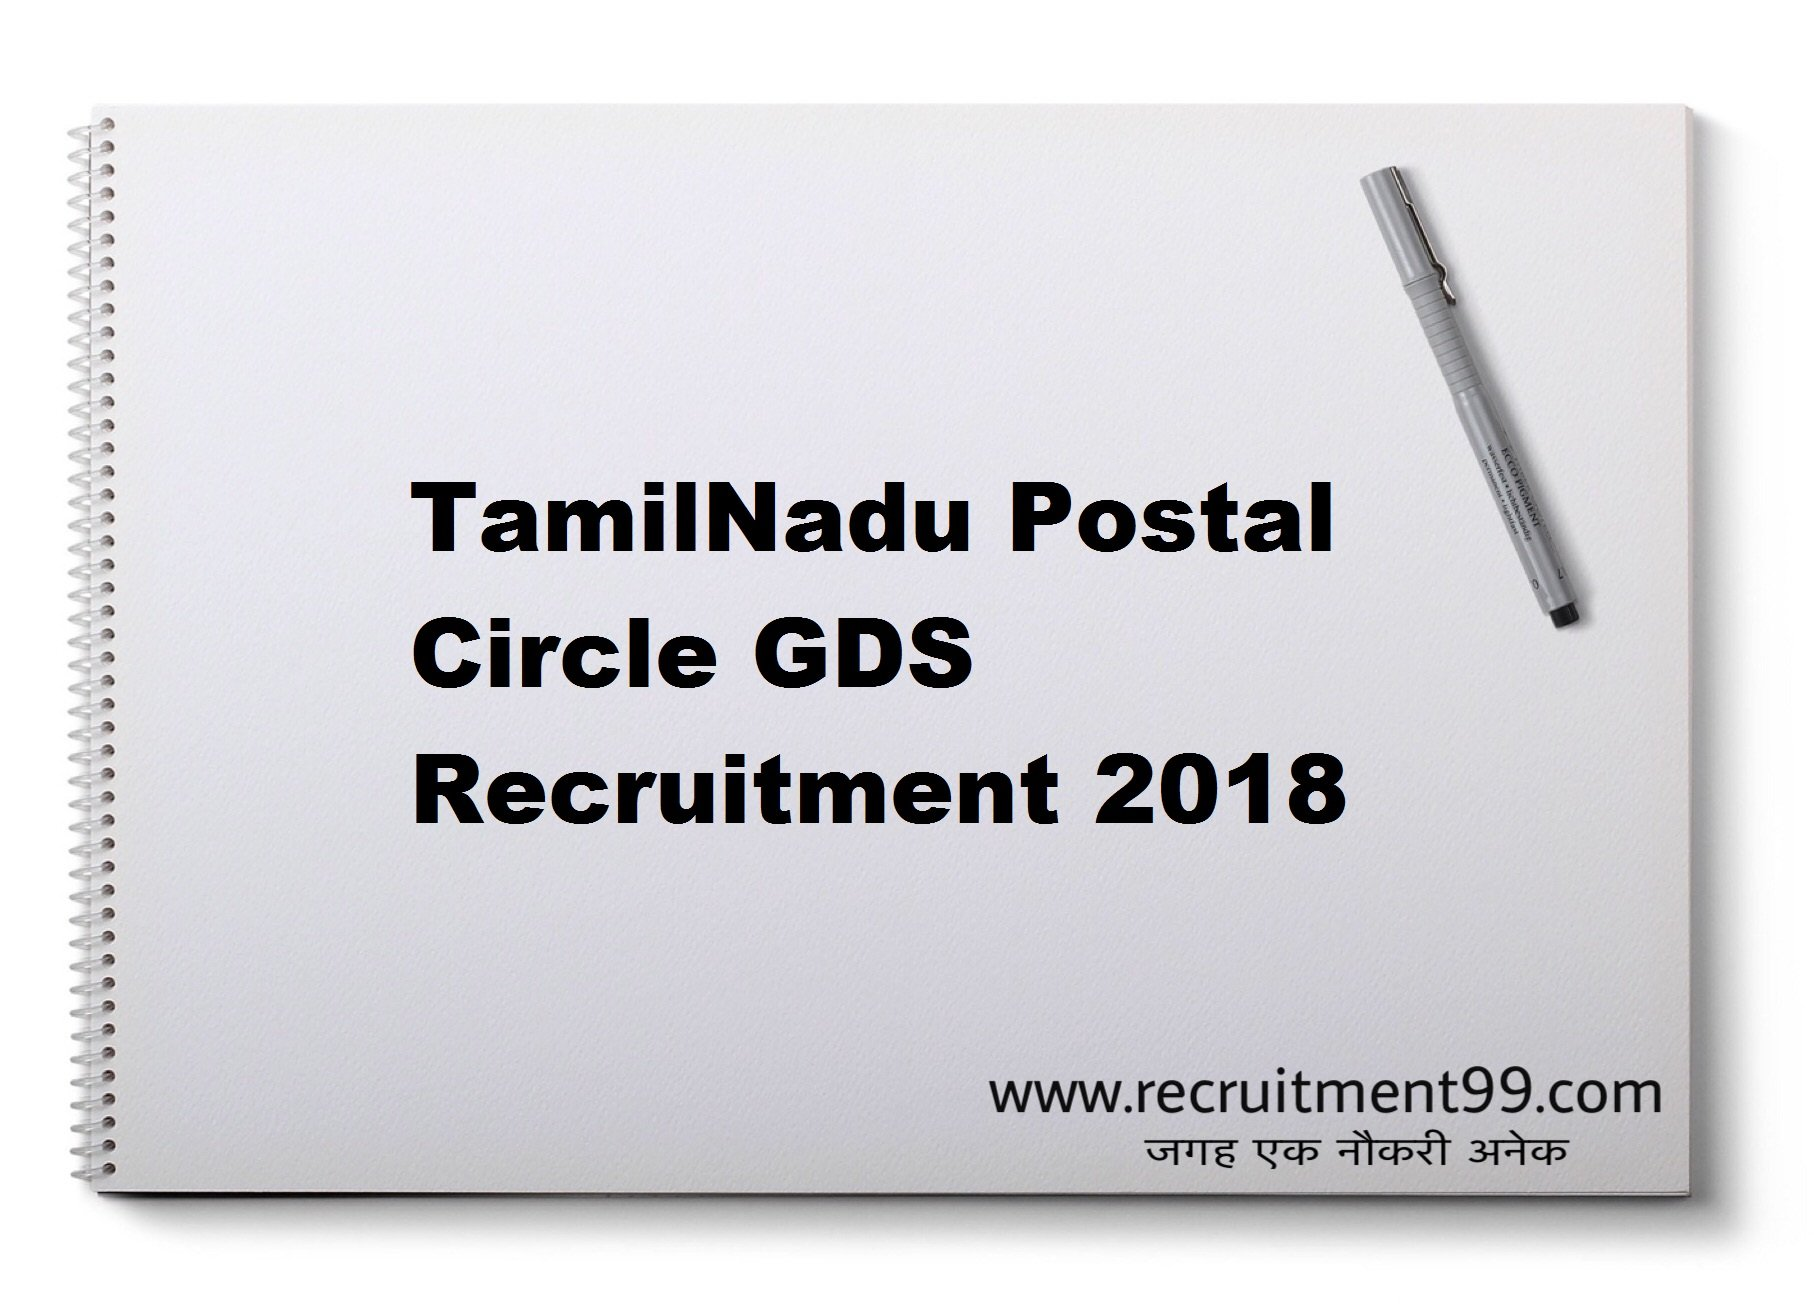 Tamil Nadu Postal Circle GDS Recruitment Hall Ticket Result 2018